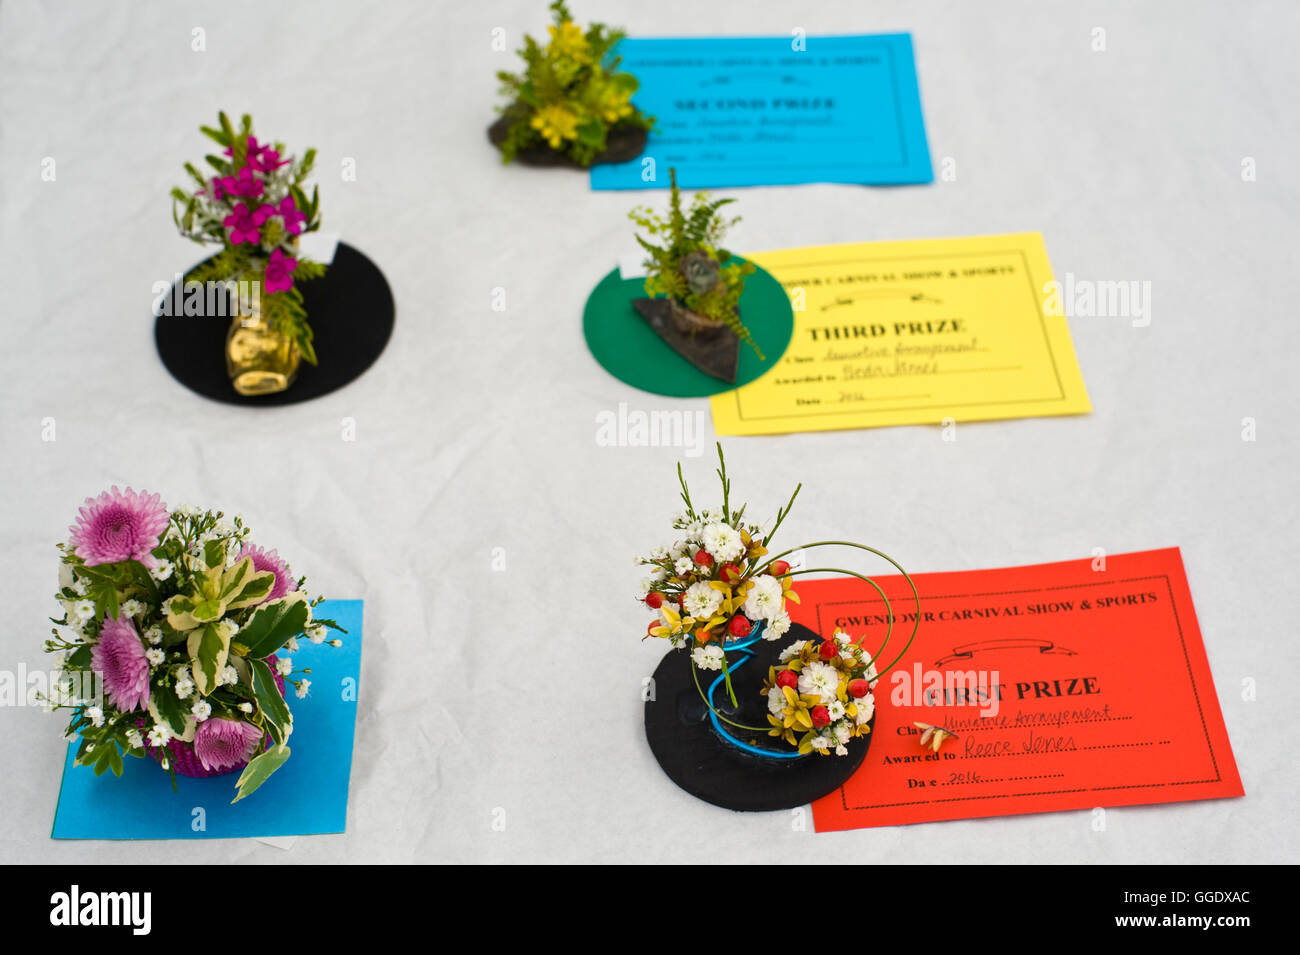 Prize winning miniature flower arrangements at Gwenddwr Show, Gwenddwr, near Builth Wells, Powys, Wales, UK - Stock Image